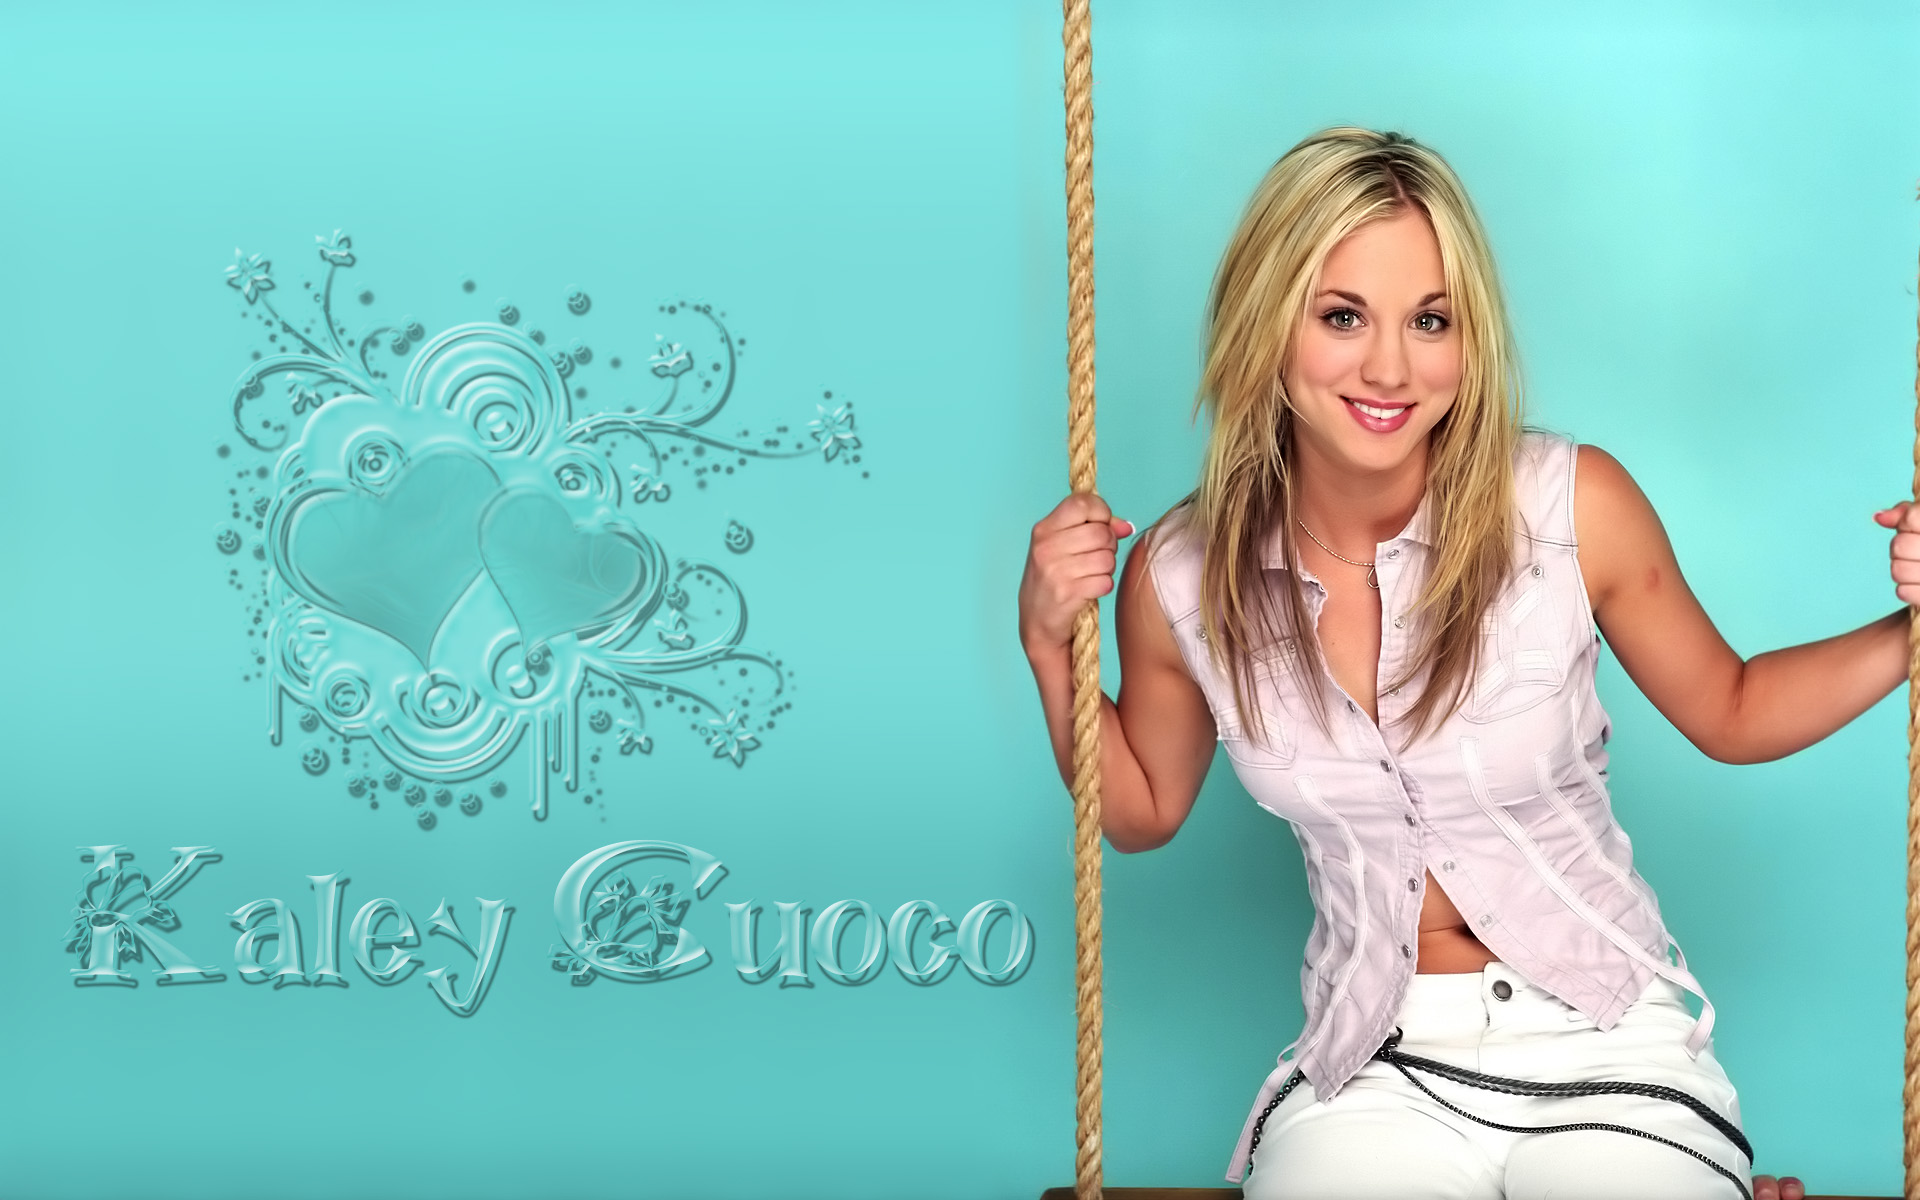 kaley cuoco wallpapers pictures images